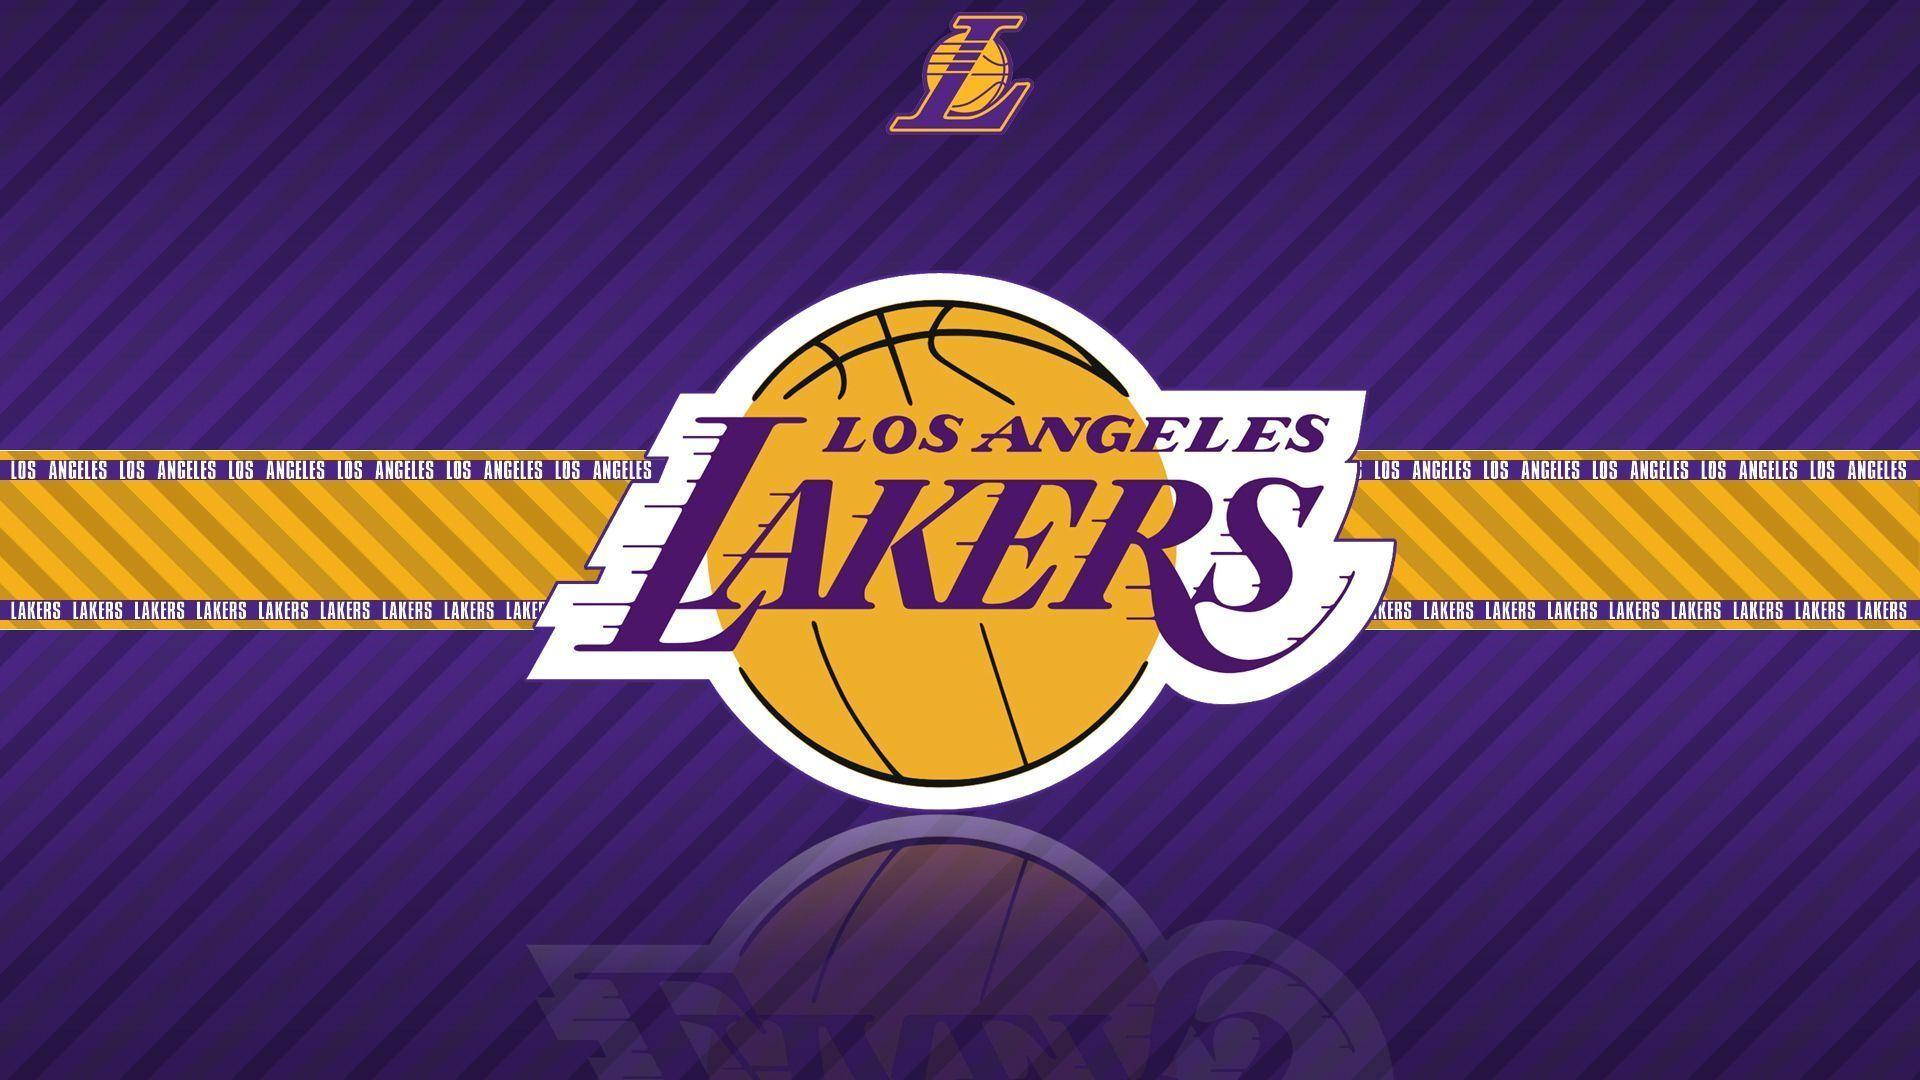 Nba Team Logos Wallpaper Images & Pictures - Becuo